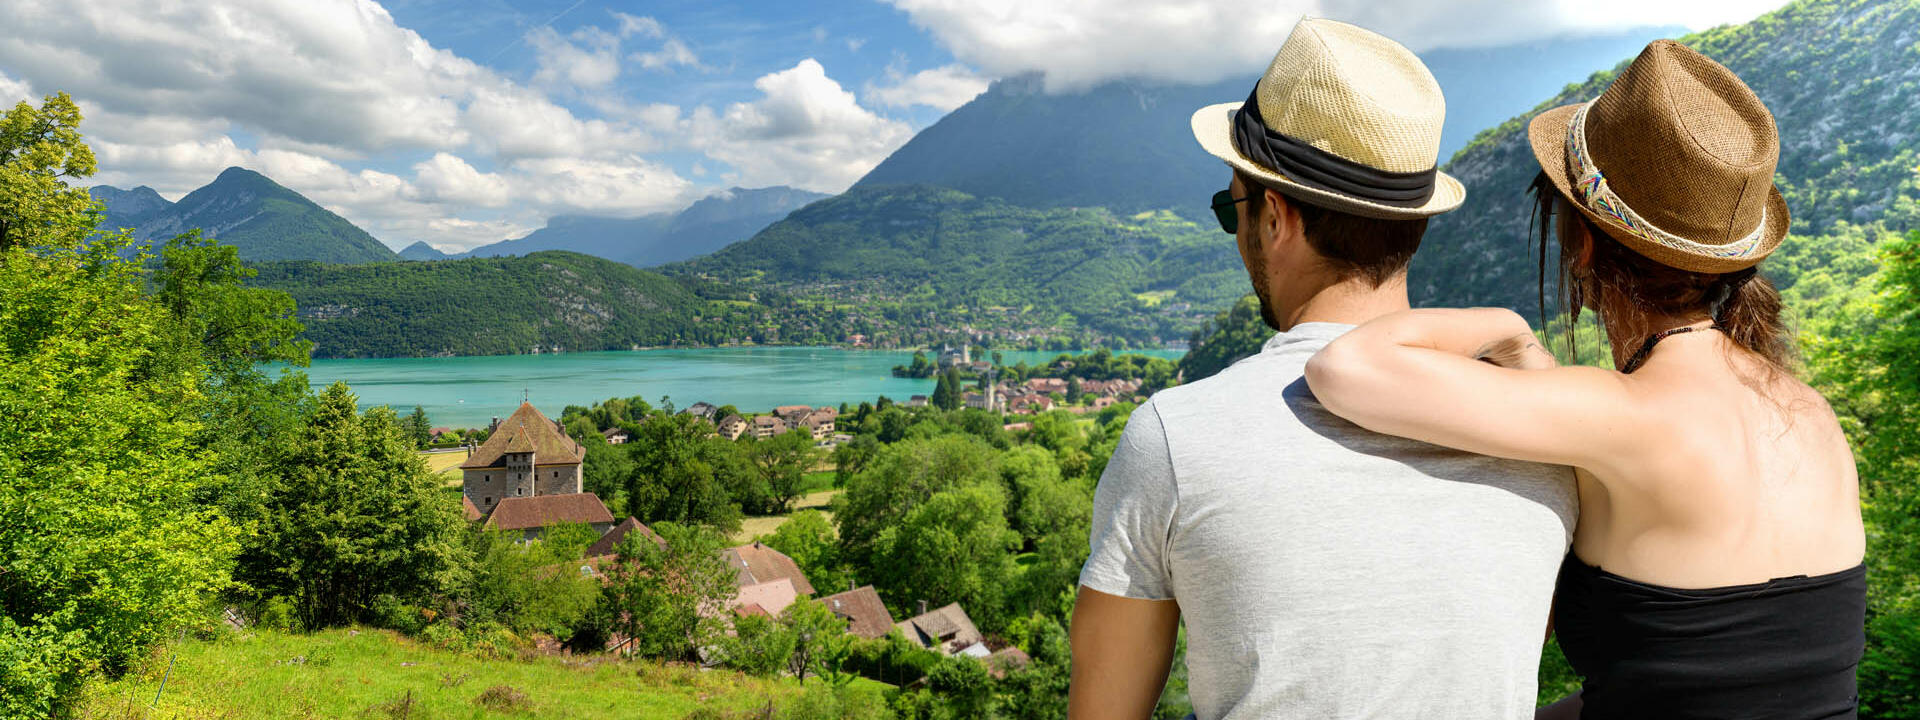 How to spend a romantic weekend in Annecy